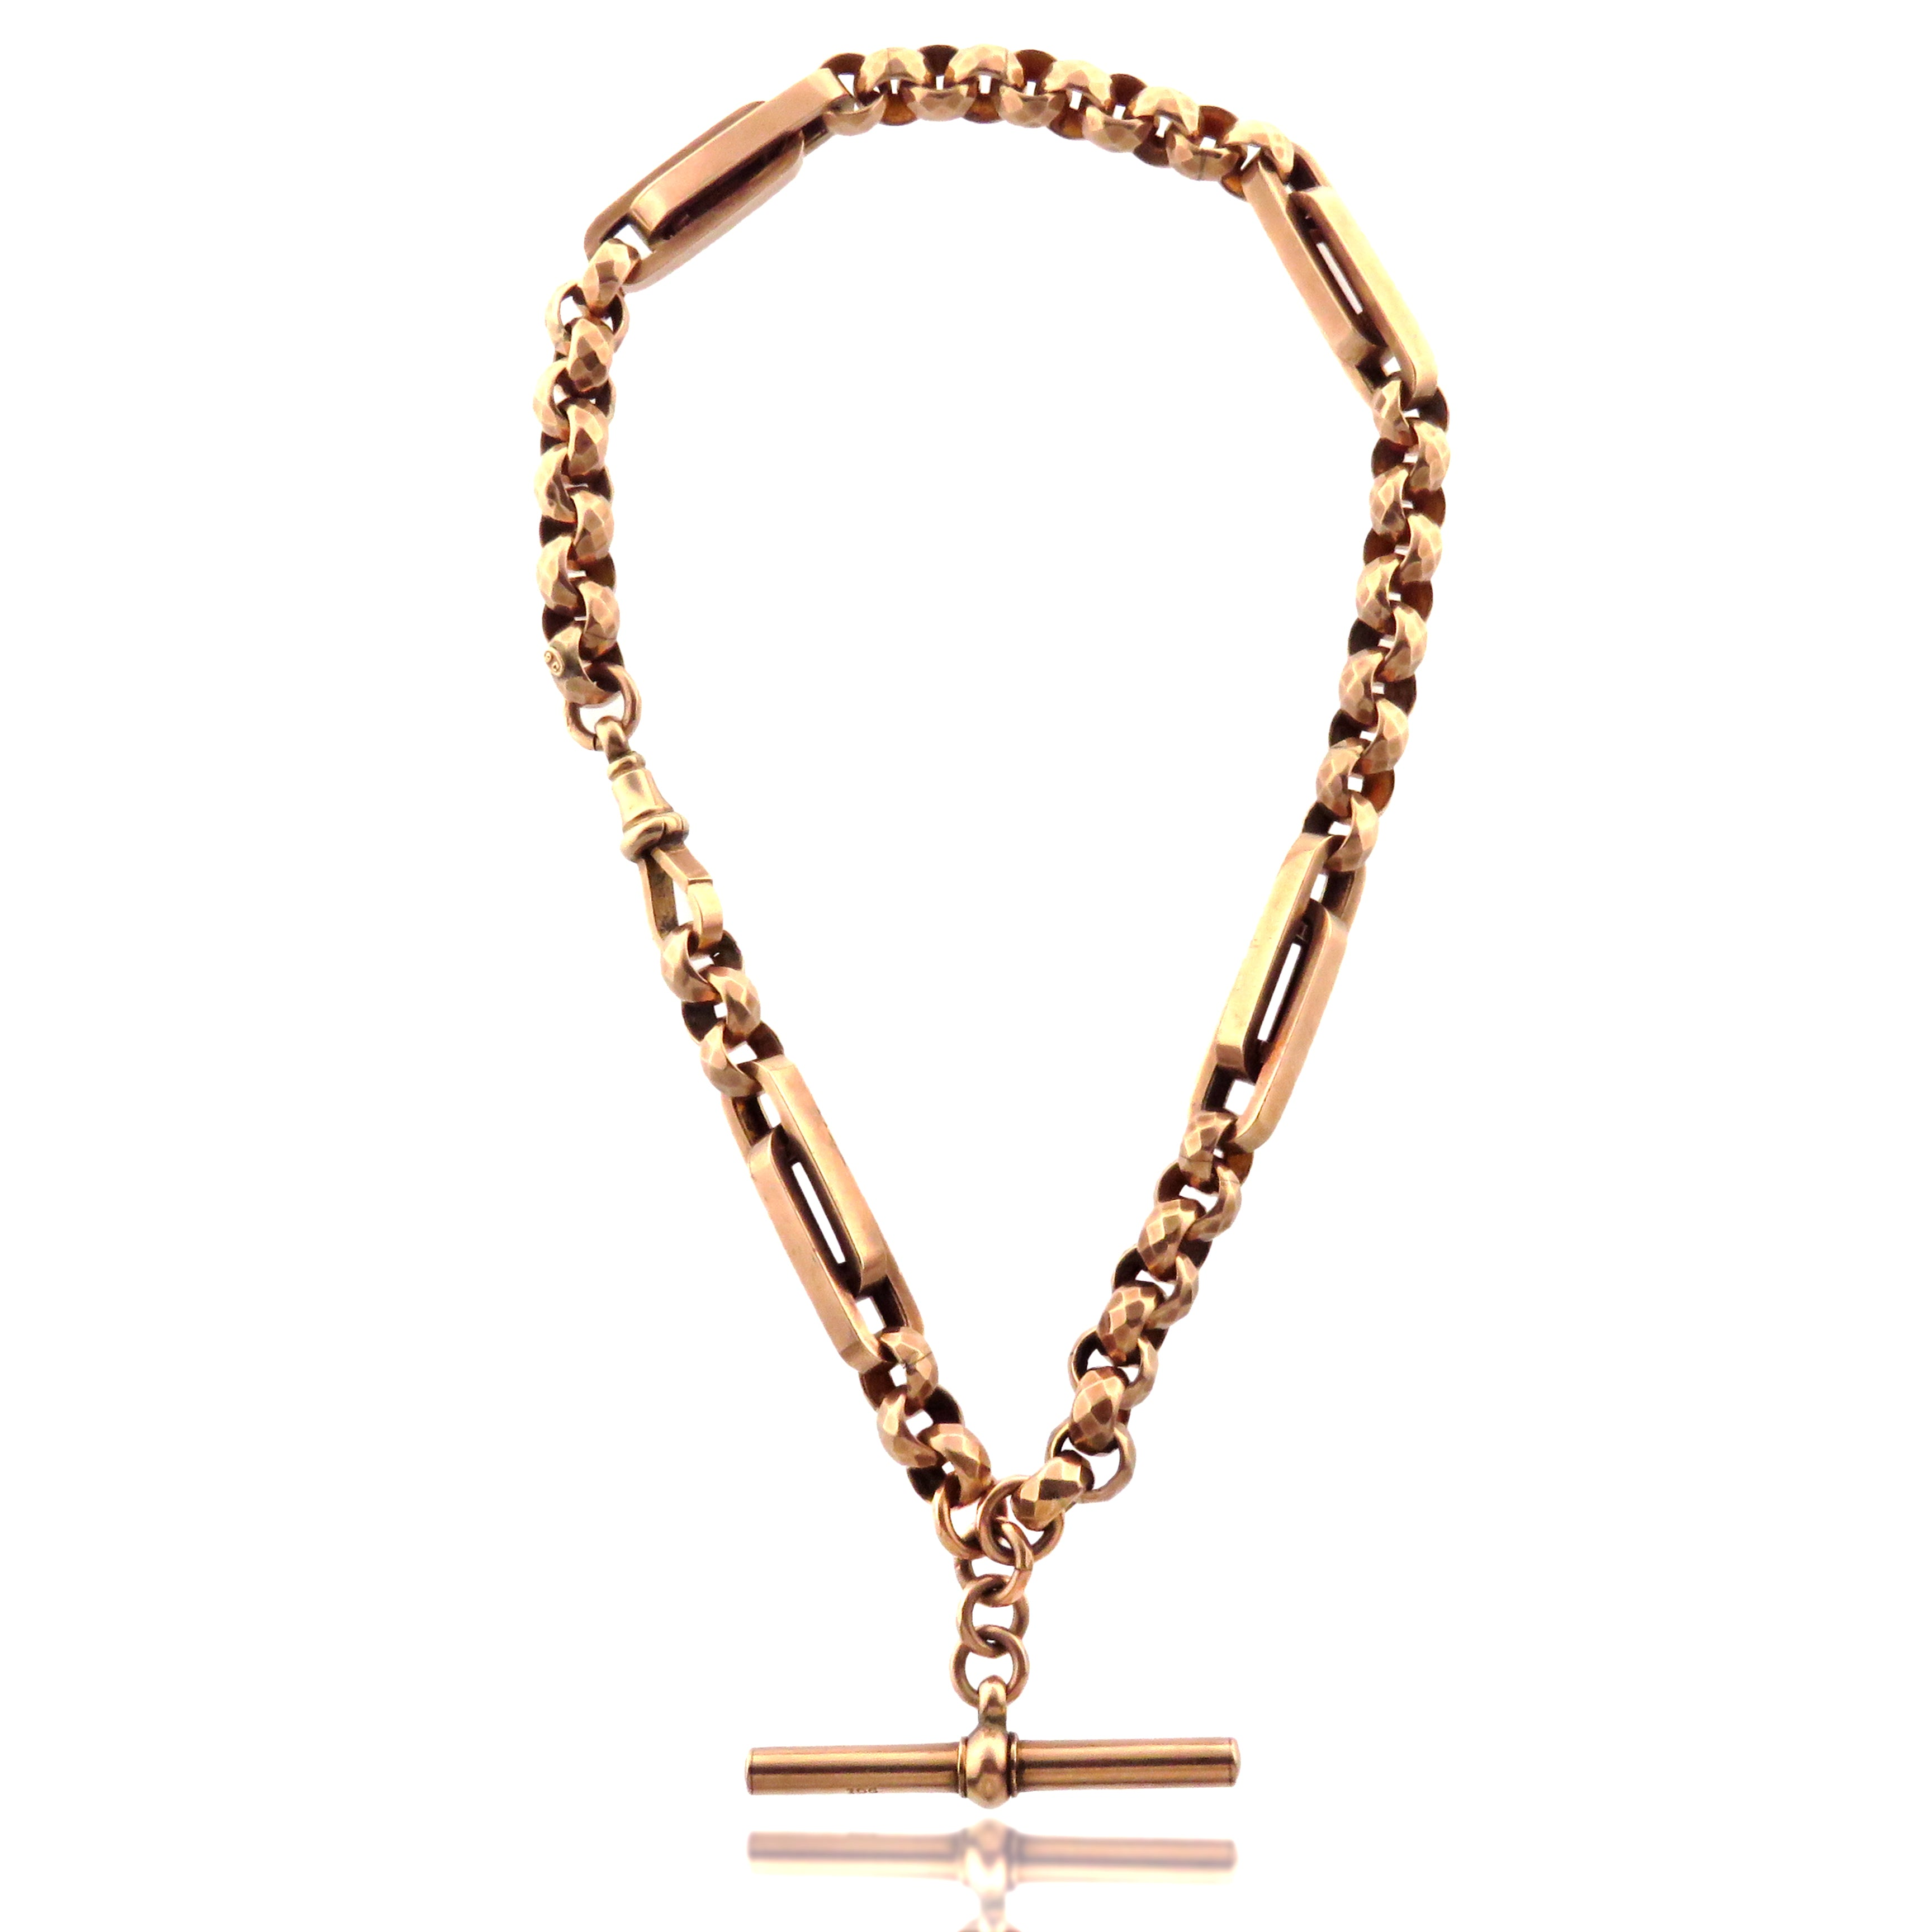 9ct Pink Gold Victorian Trombone and Belcher Link Chain with T Bar